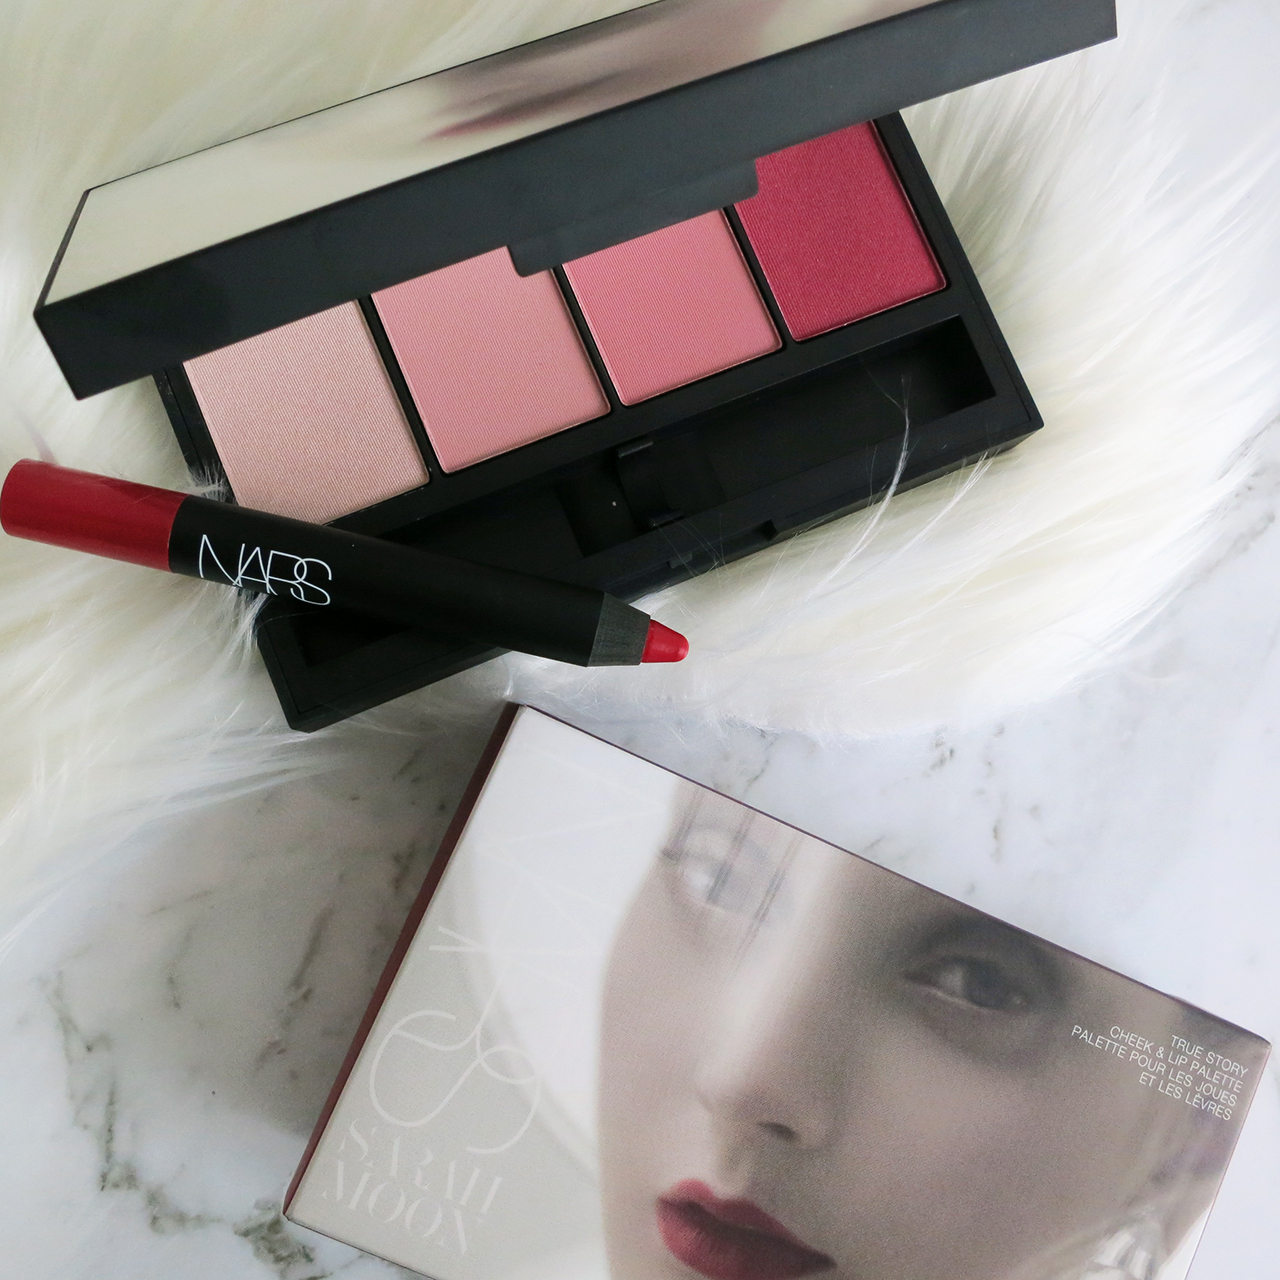 NARS x Sarah Moon True Story Cheek & Lip Palette